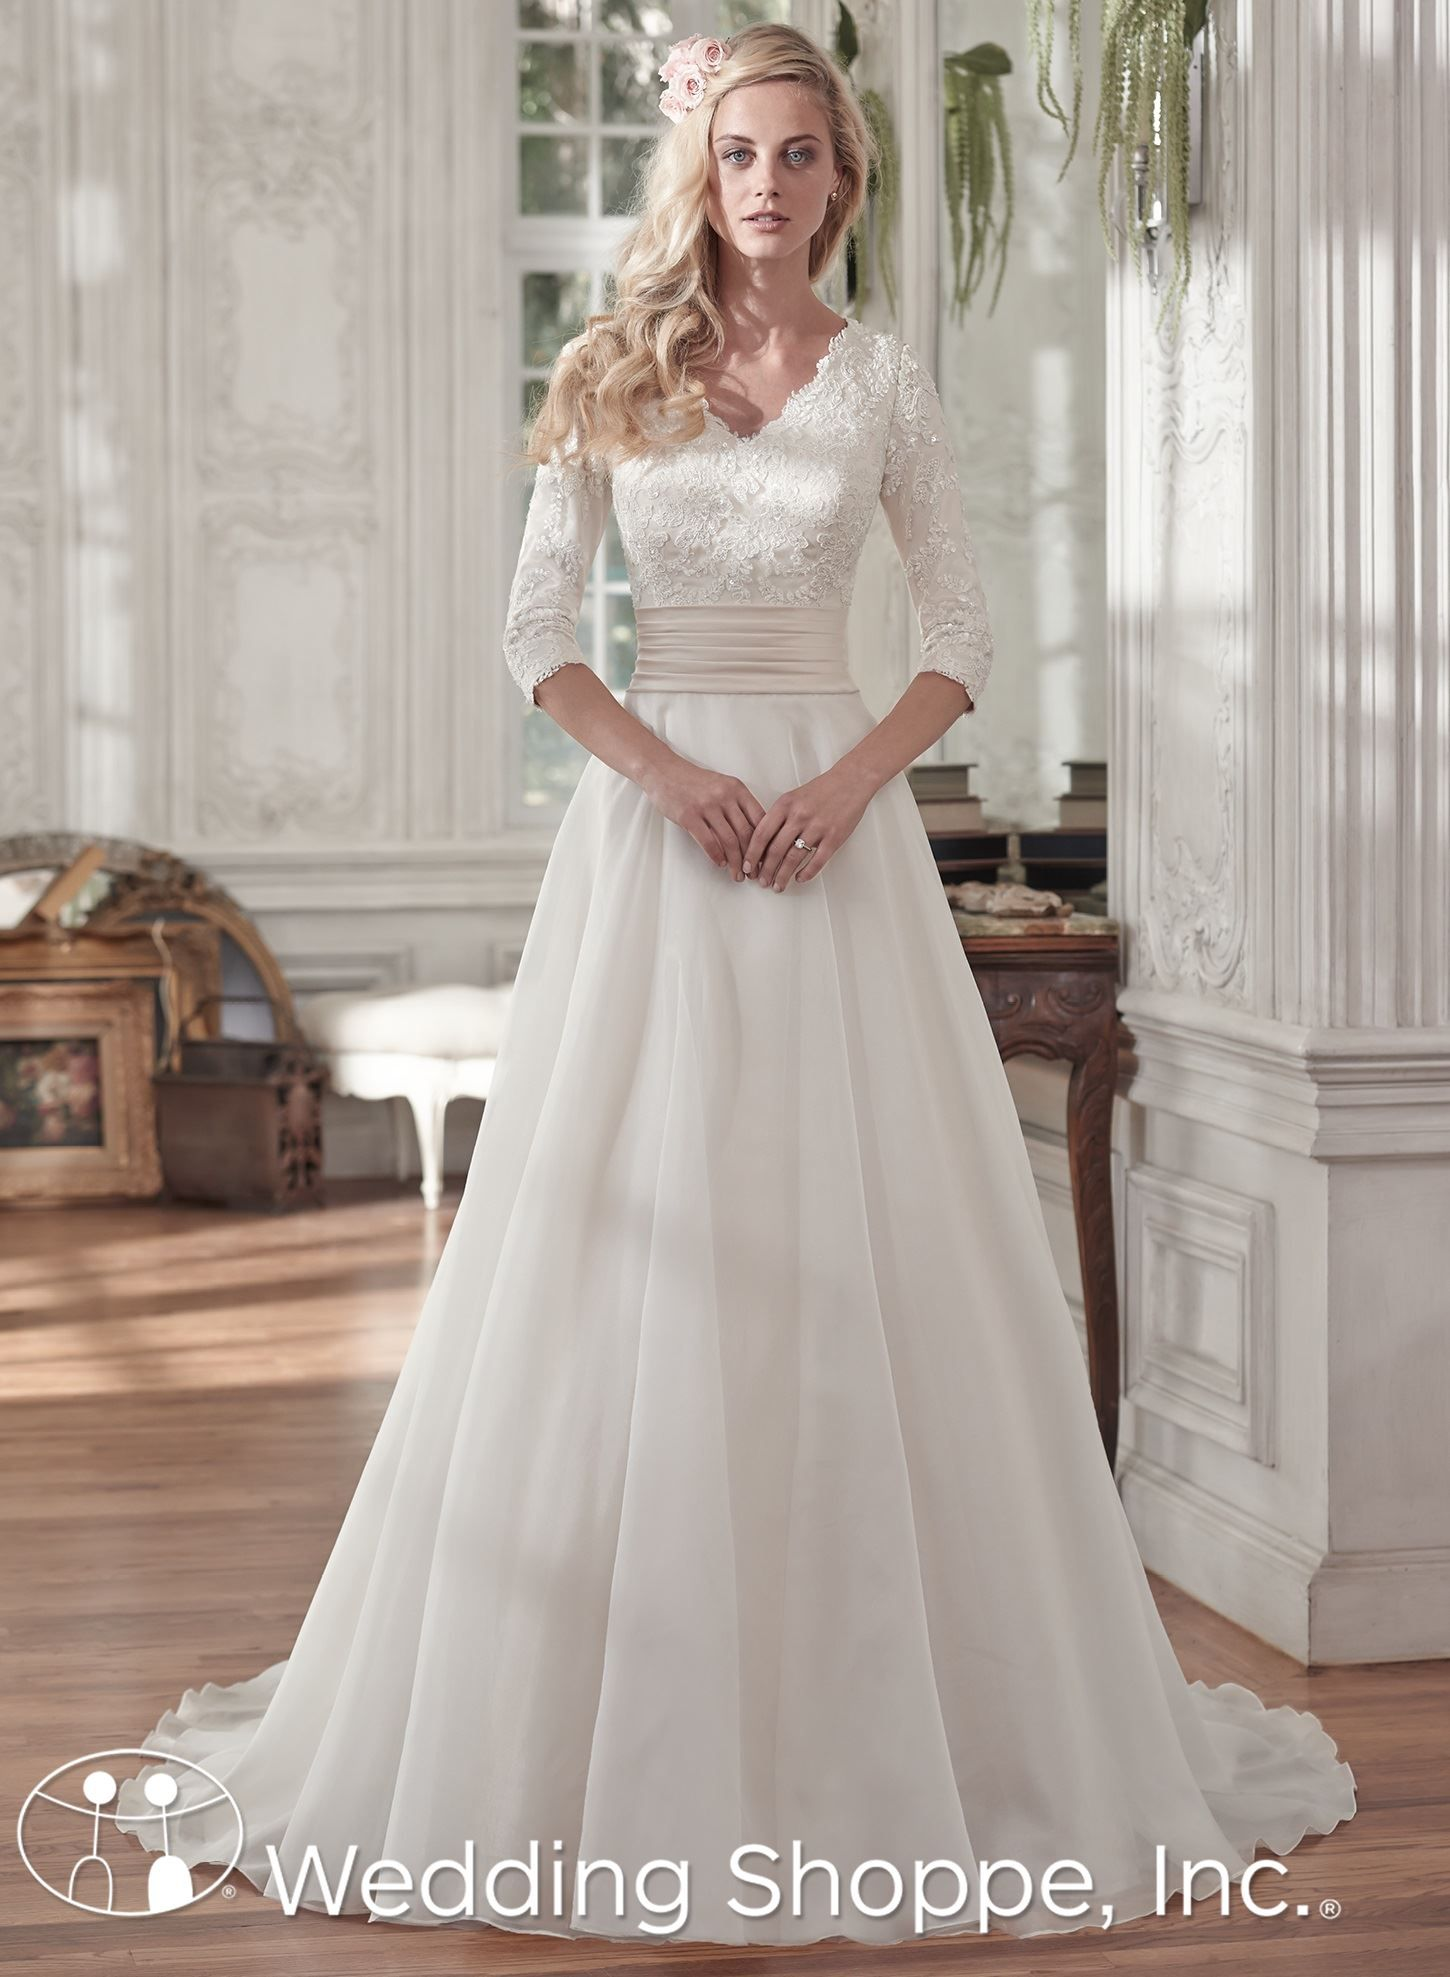 Maggie Sottero Bridal Gown Brentleigh / 6MS289 in 2018 | The Wedding ...